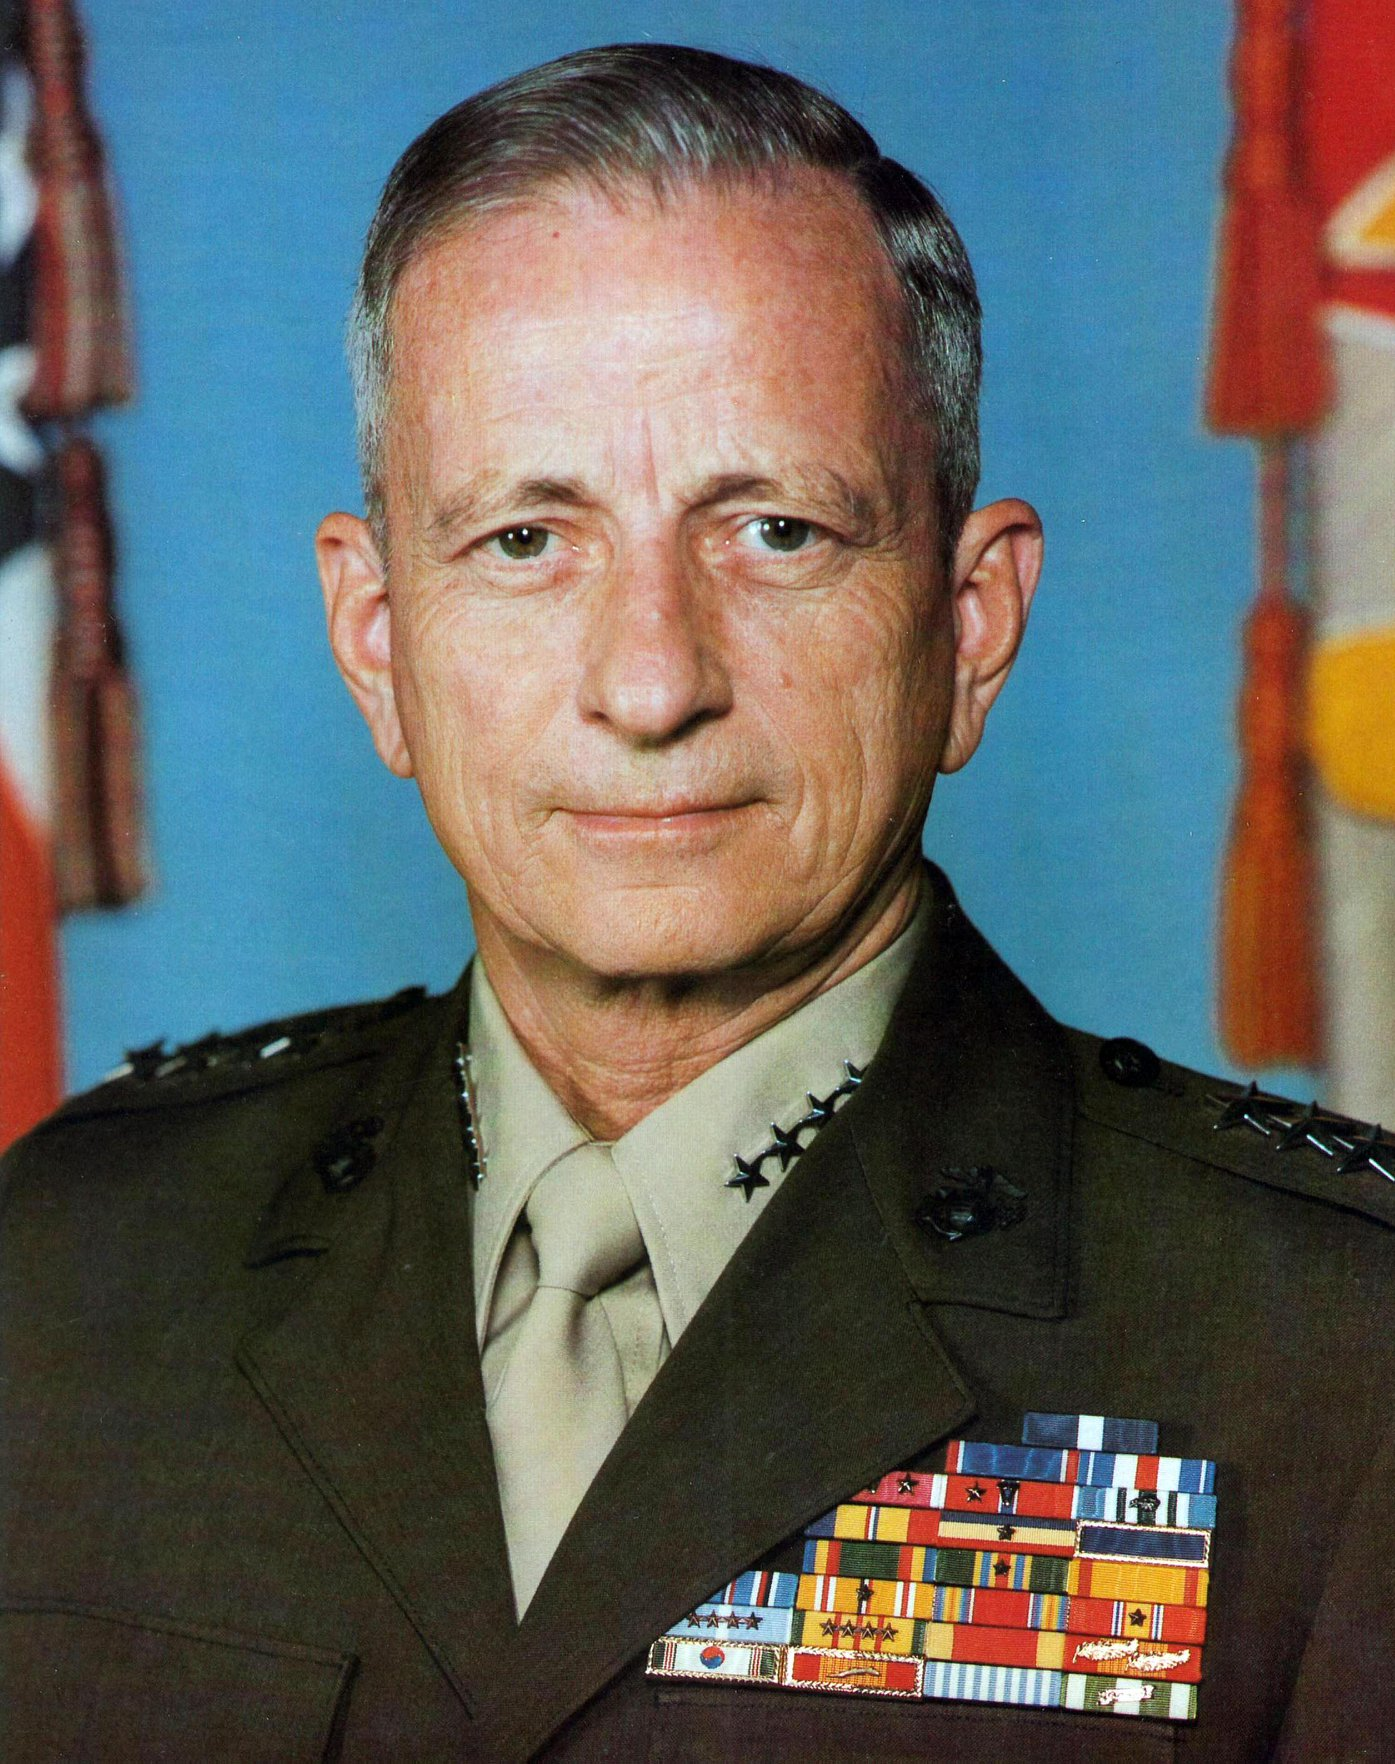 Gen. Robert H. Barrow, 27th commandant of the Marine Corps